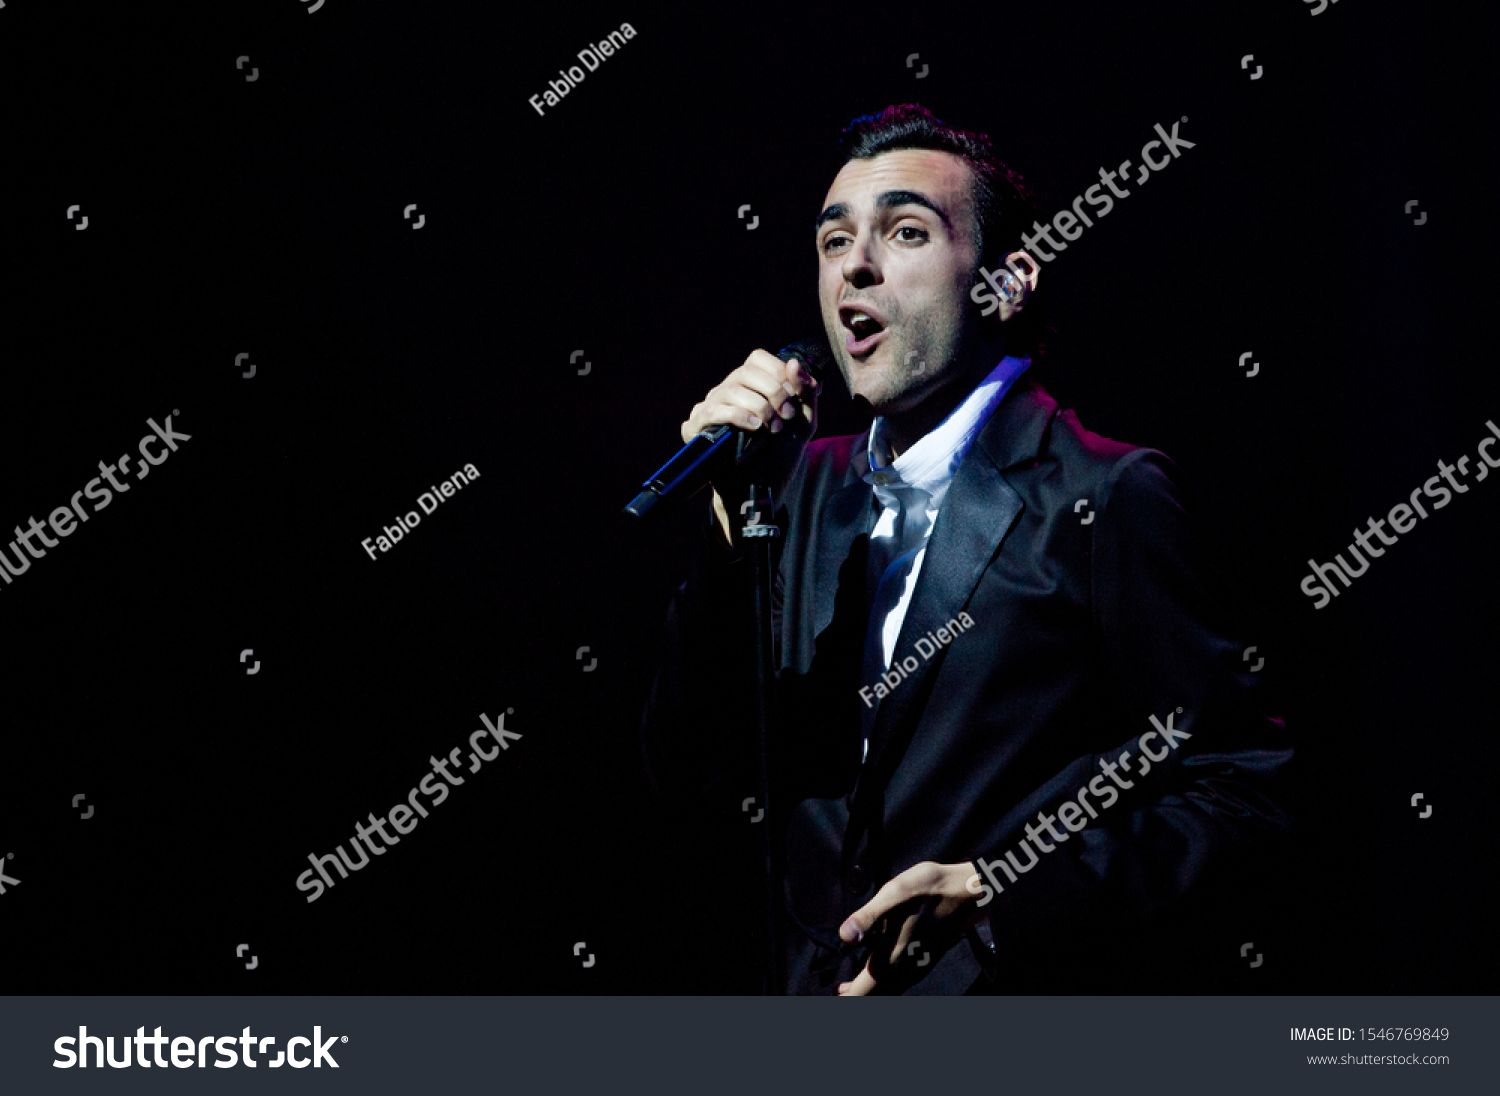 Milan Italy 19 April 2012  Live concert of Marco Mengoni  Tour Teatrale 2012 at the